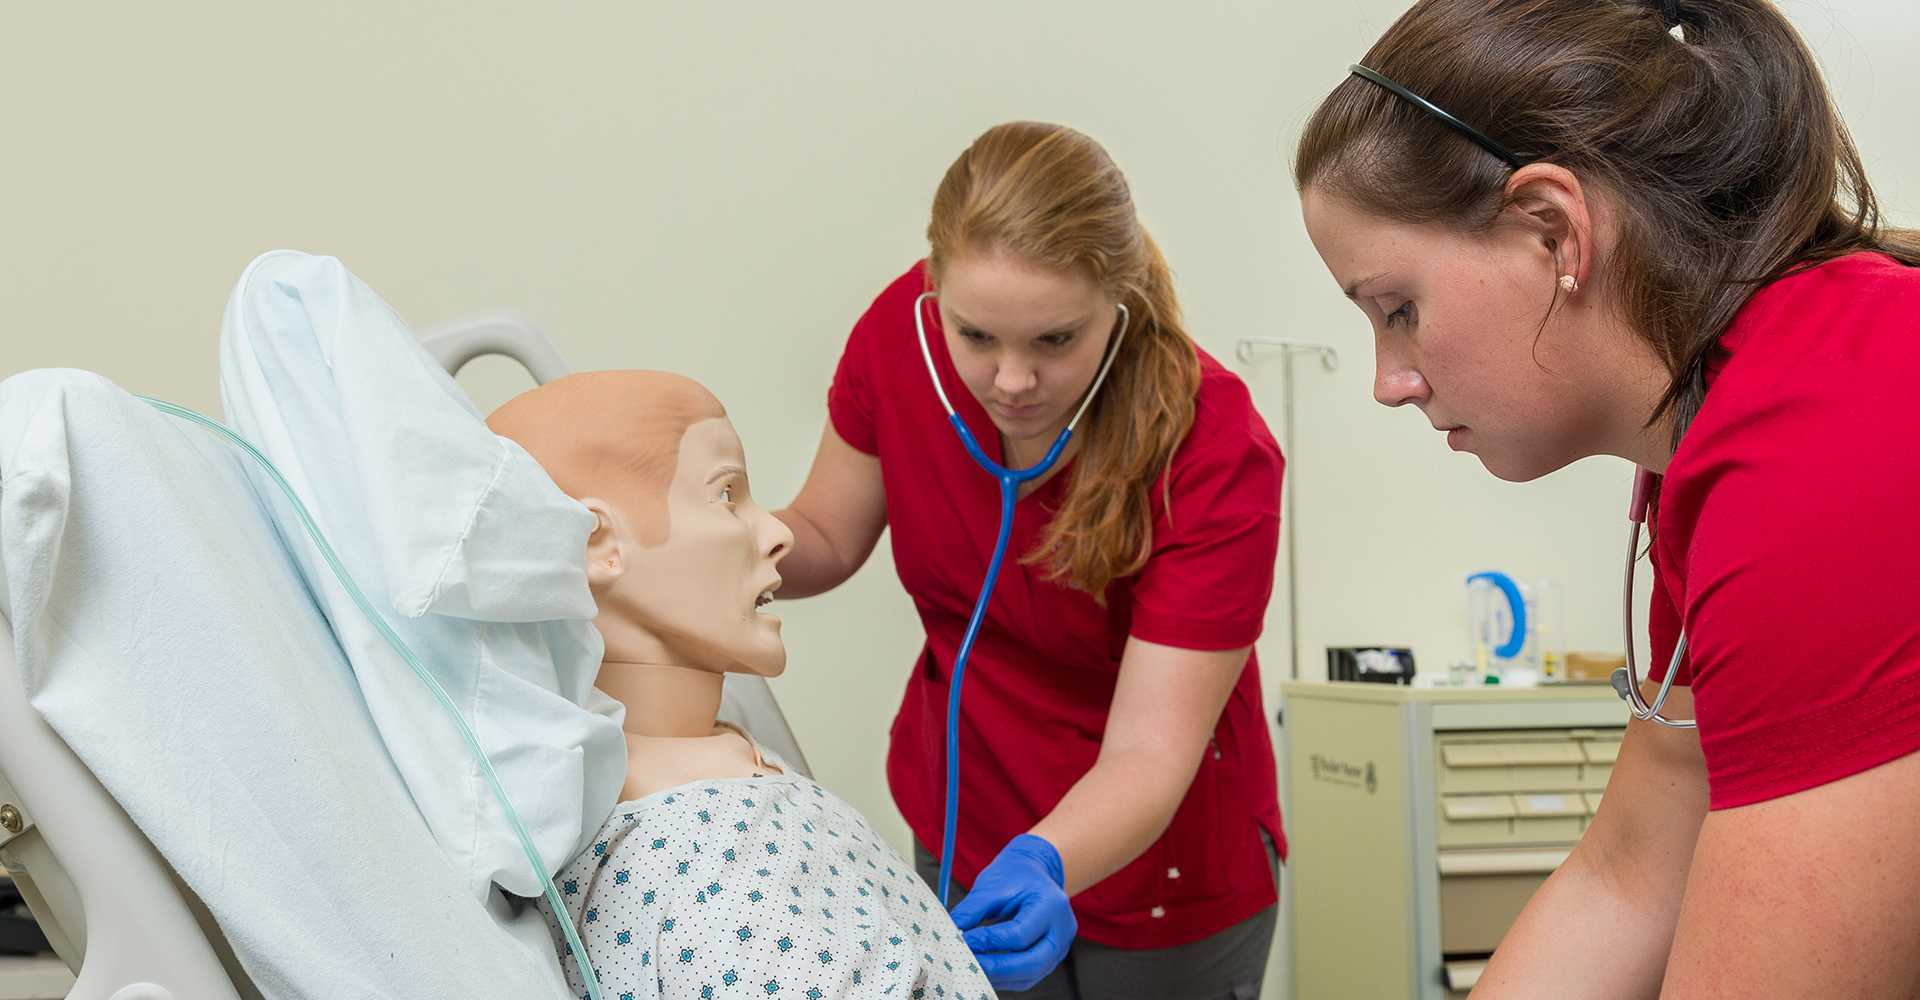 Nursing students working with state-of-the-art training equipment